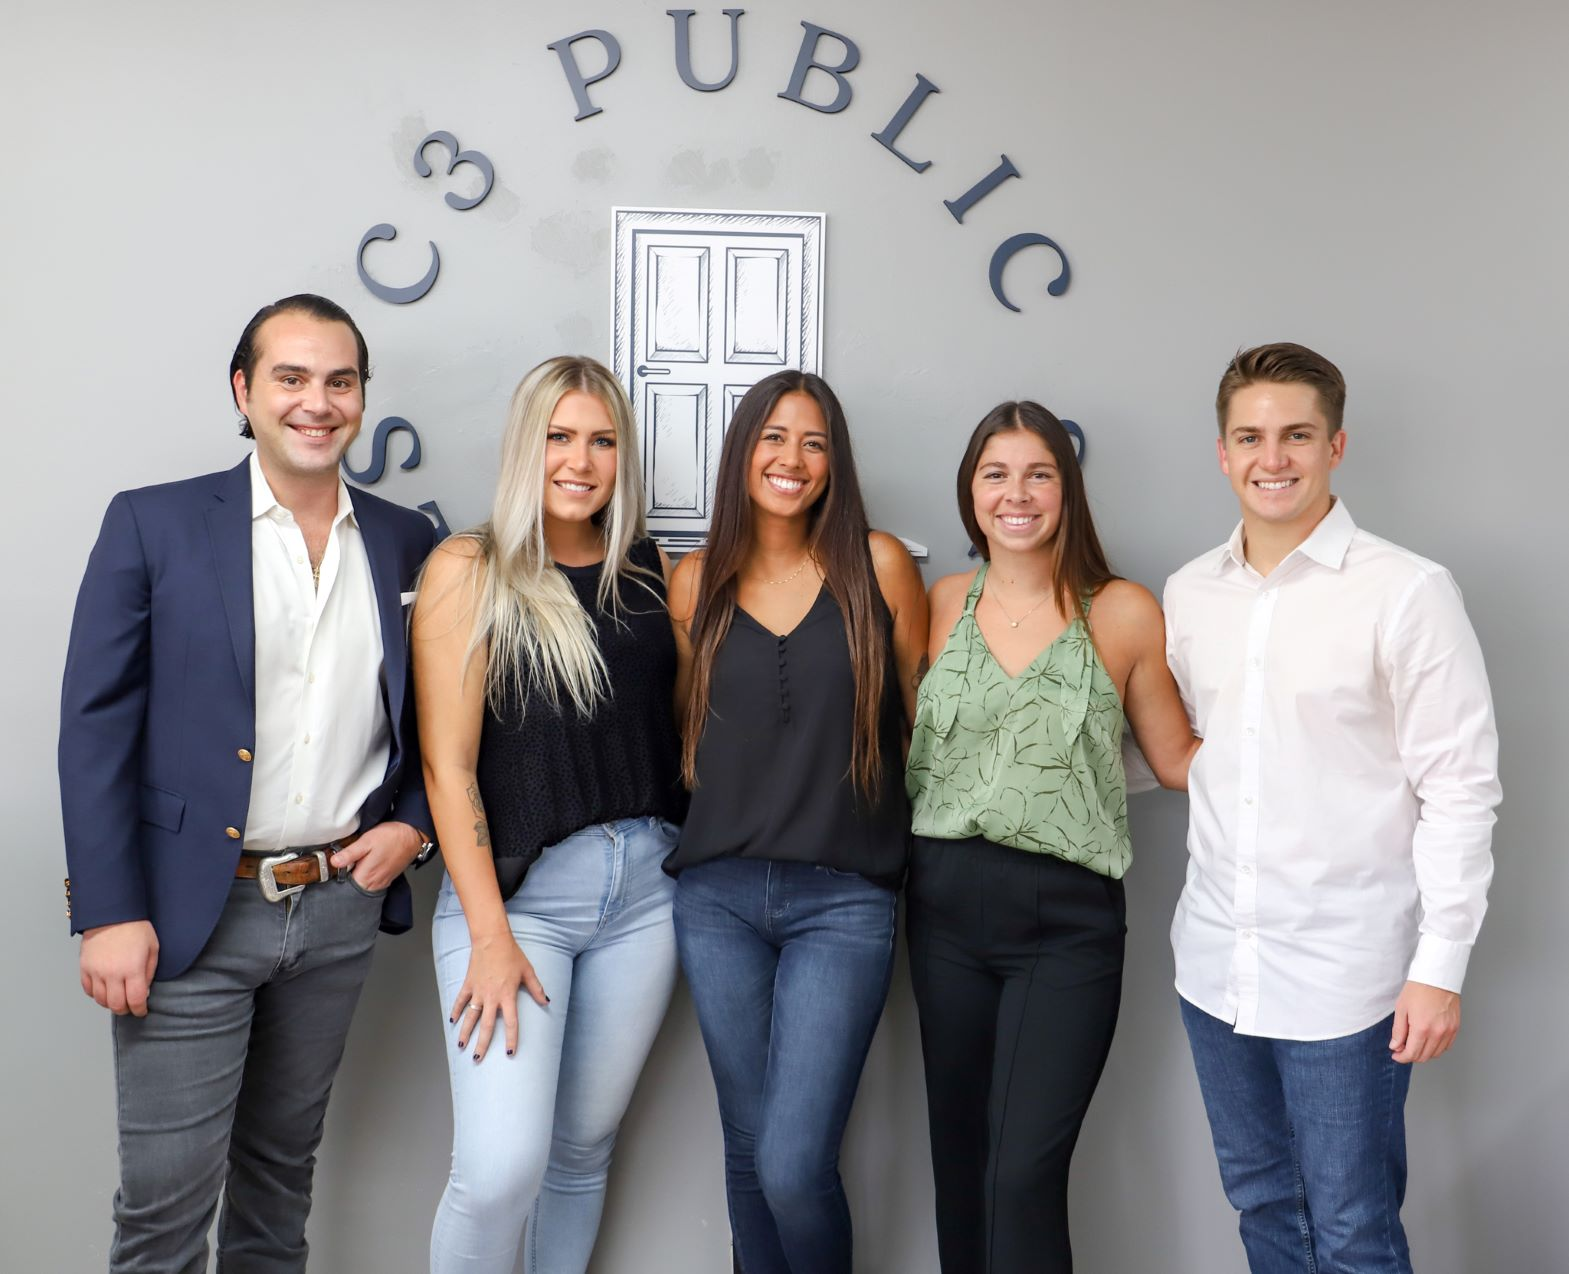 An Introduction to the C3 Public Strategies Team